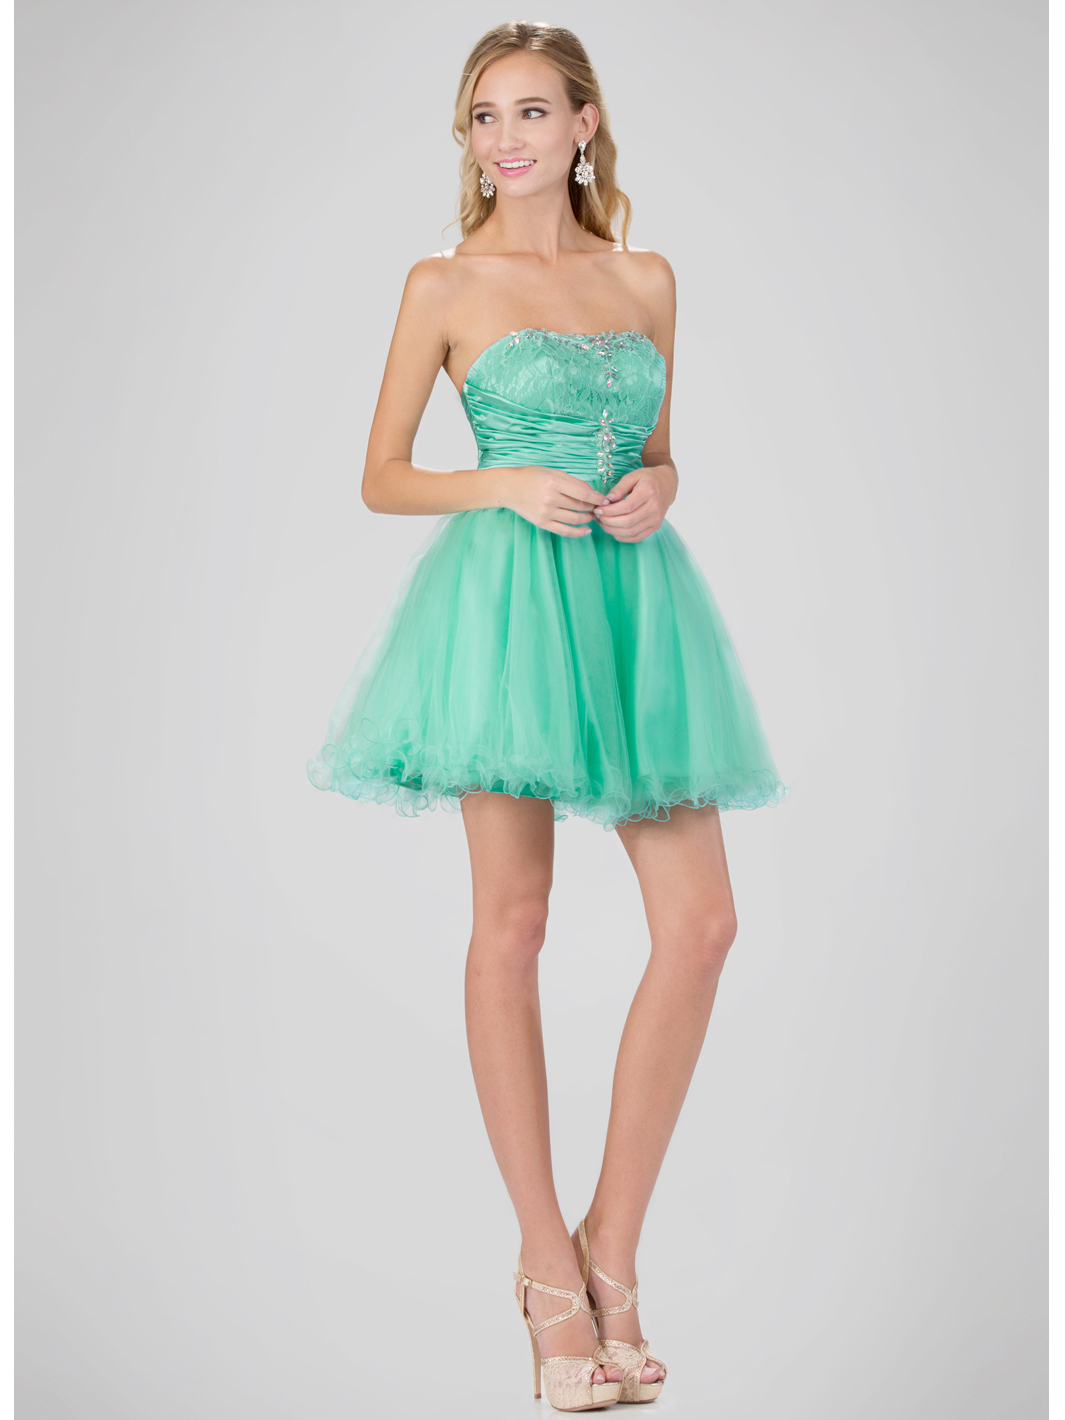 Mini Sweetheart Homecoming Dress with Tulle Skirt | Sung Boutique L.A.